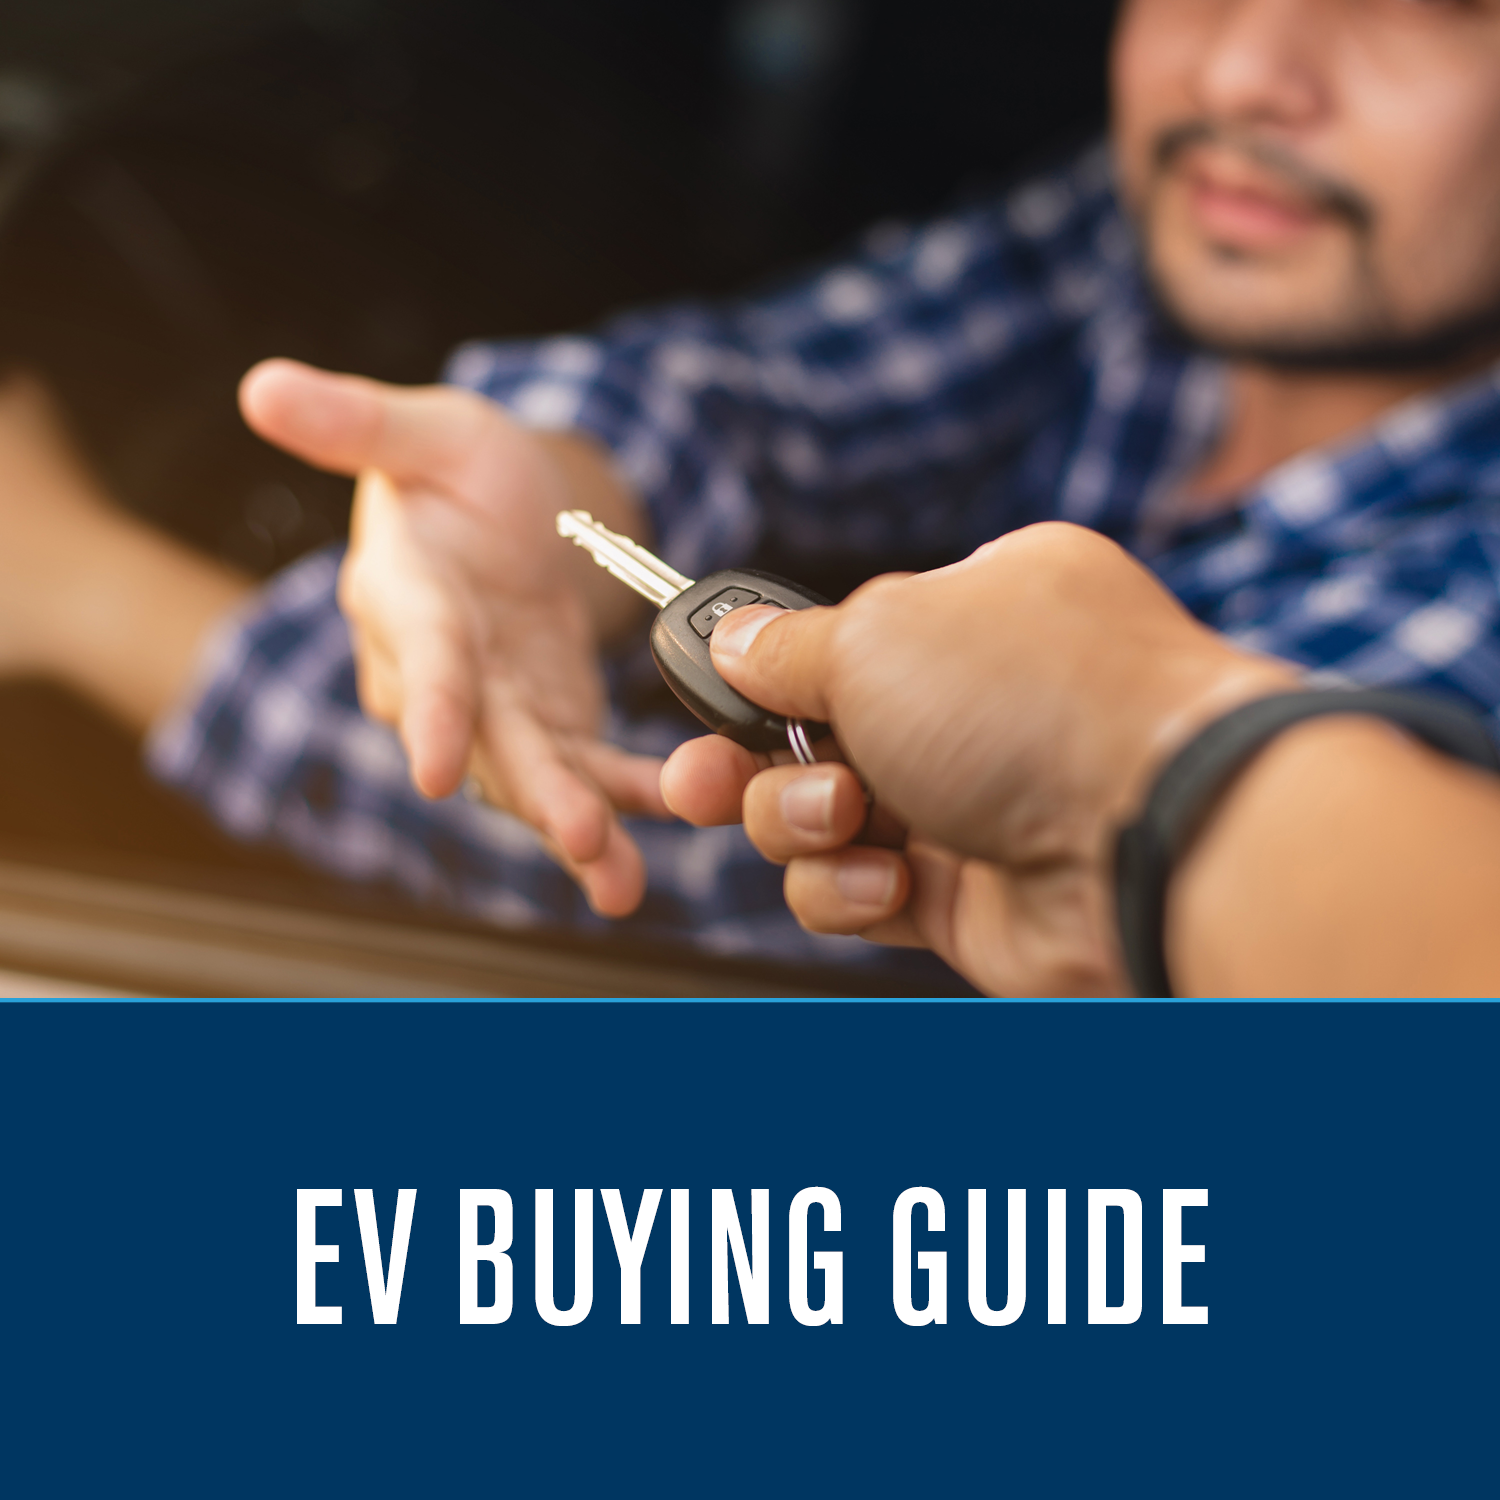 EV Buying Guide